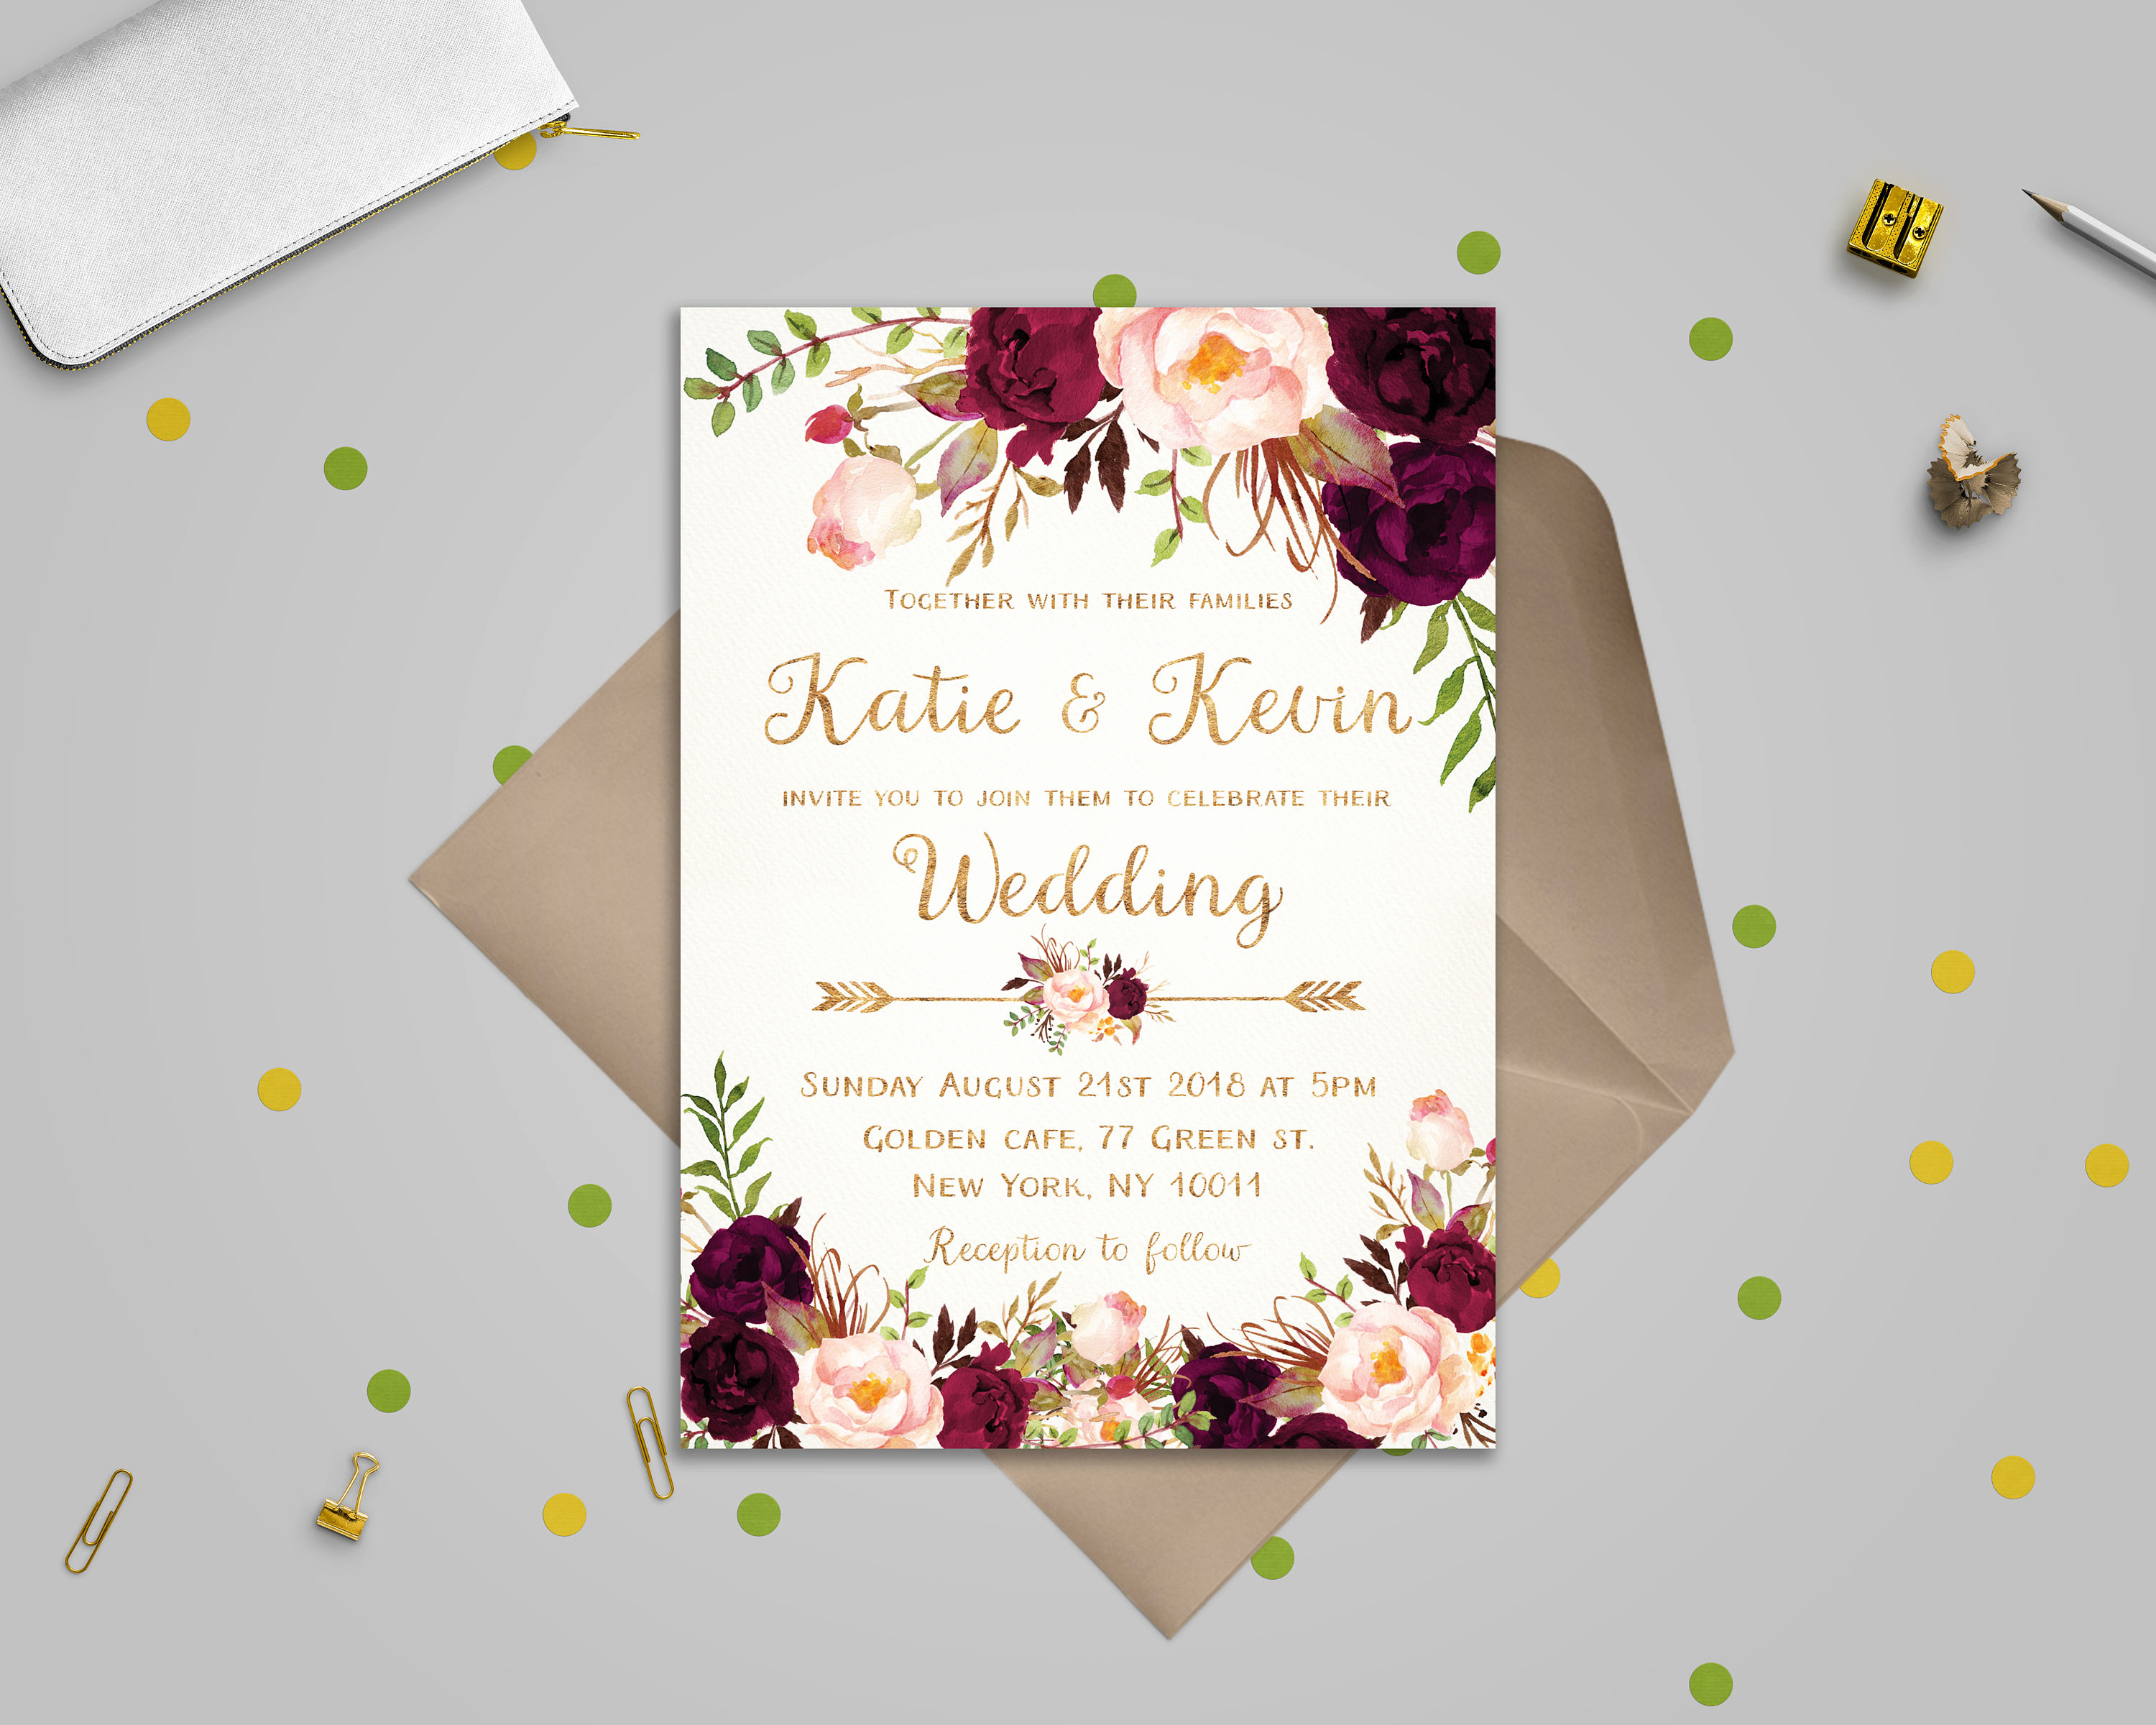 Wedding Invitation Details Card Unique Floral Wedding Invitation Template Wedding Invitation